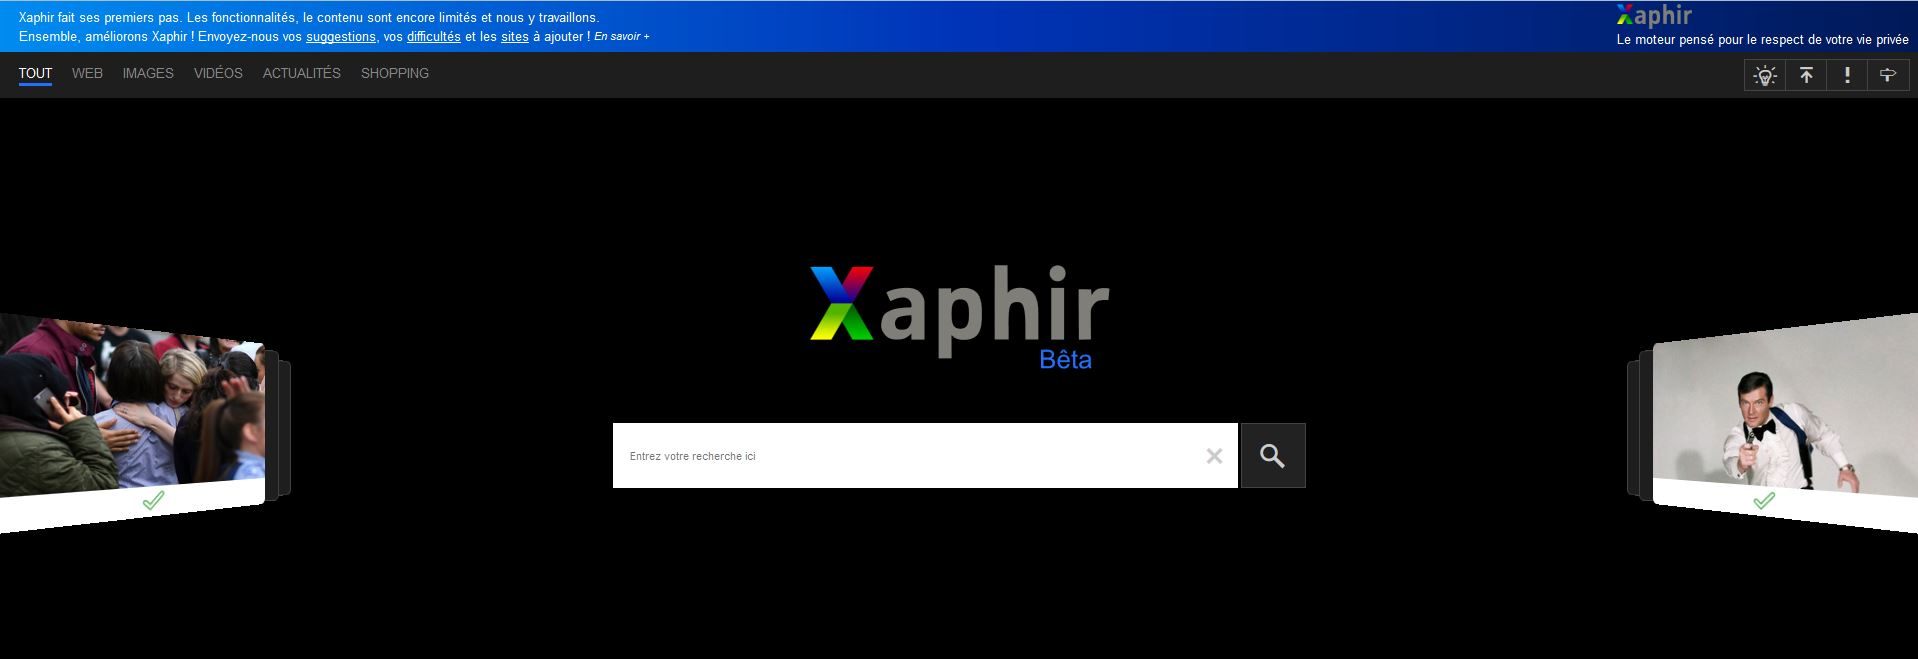 interface de Xaphir